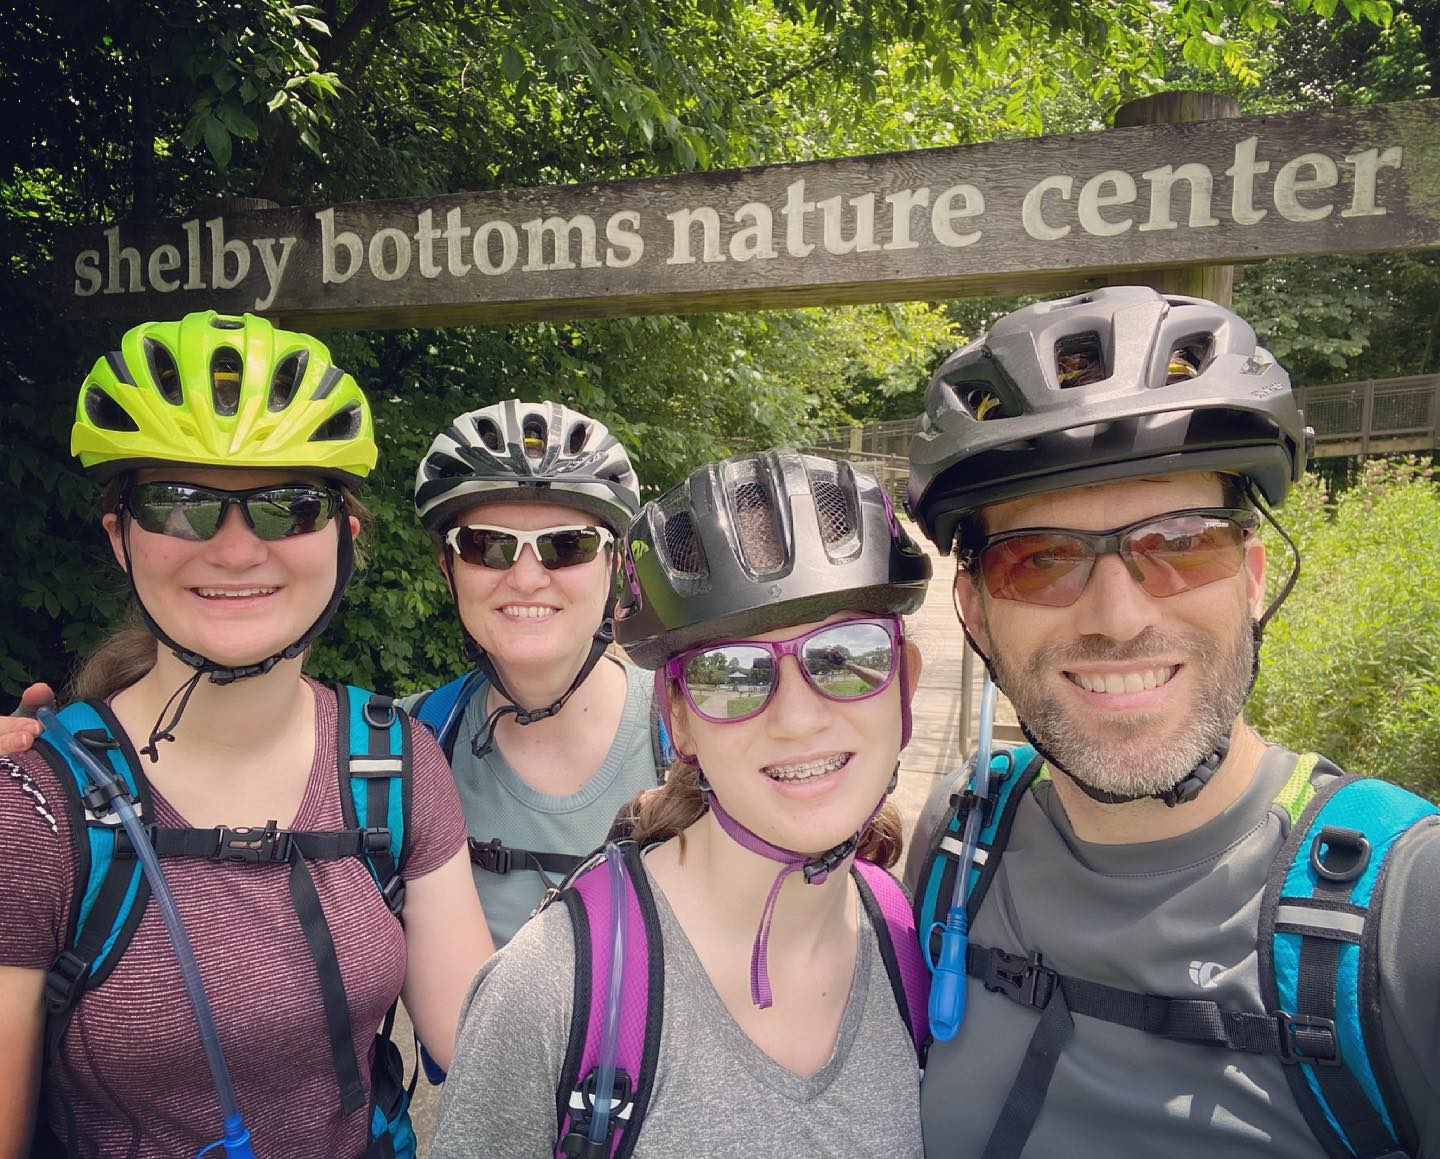 Super fun day biking (and playing) at Shelby Bottoms, Cornelia Fort Airpark, and the Stones River Greenway. #family #biking